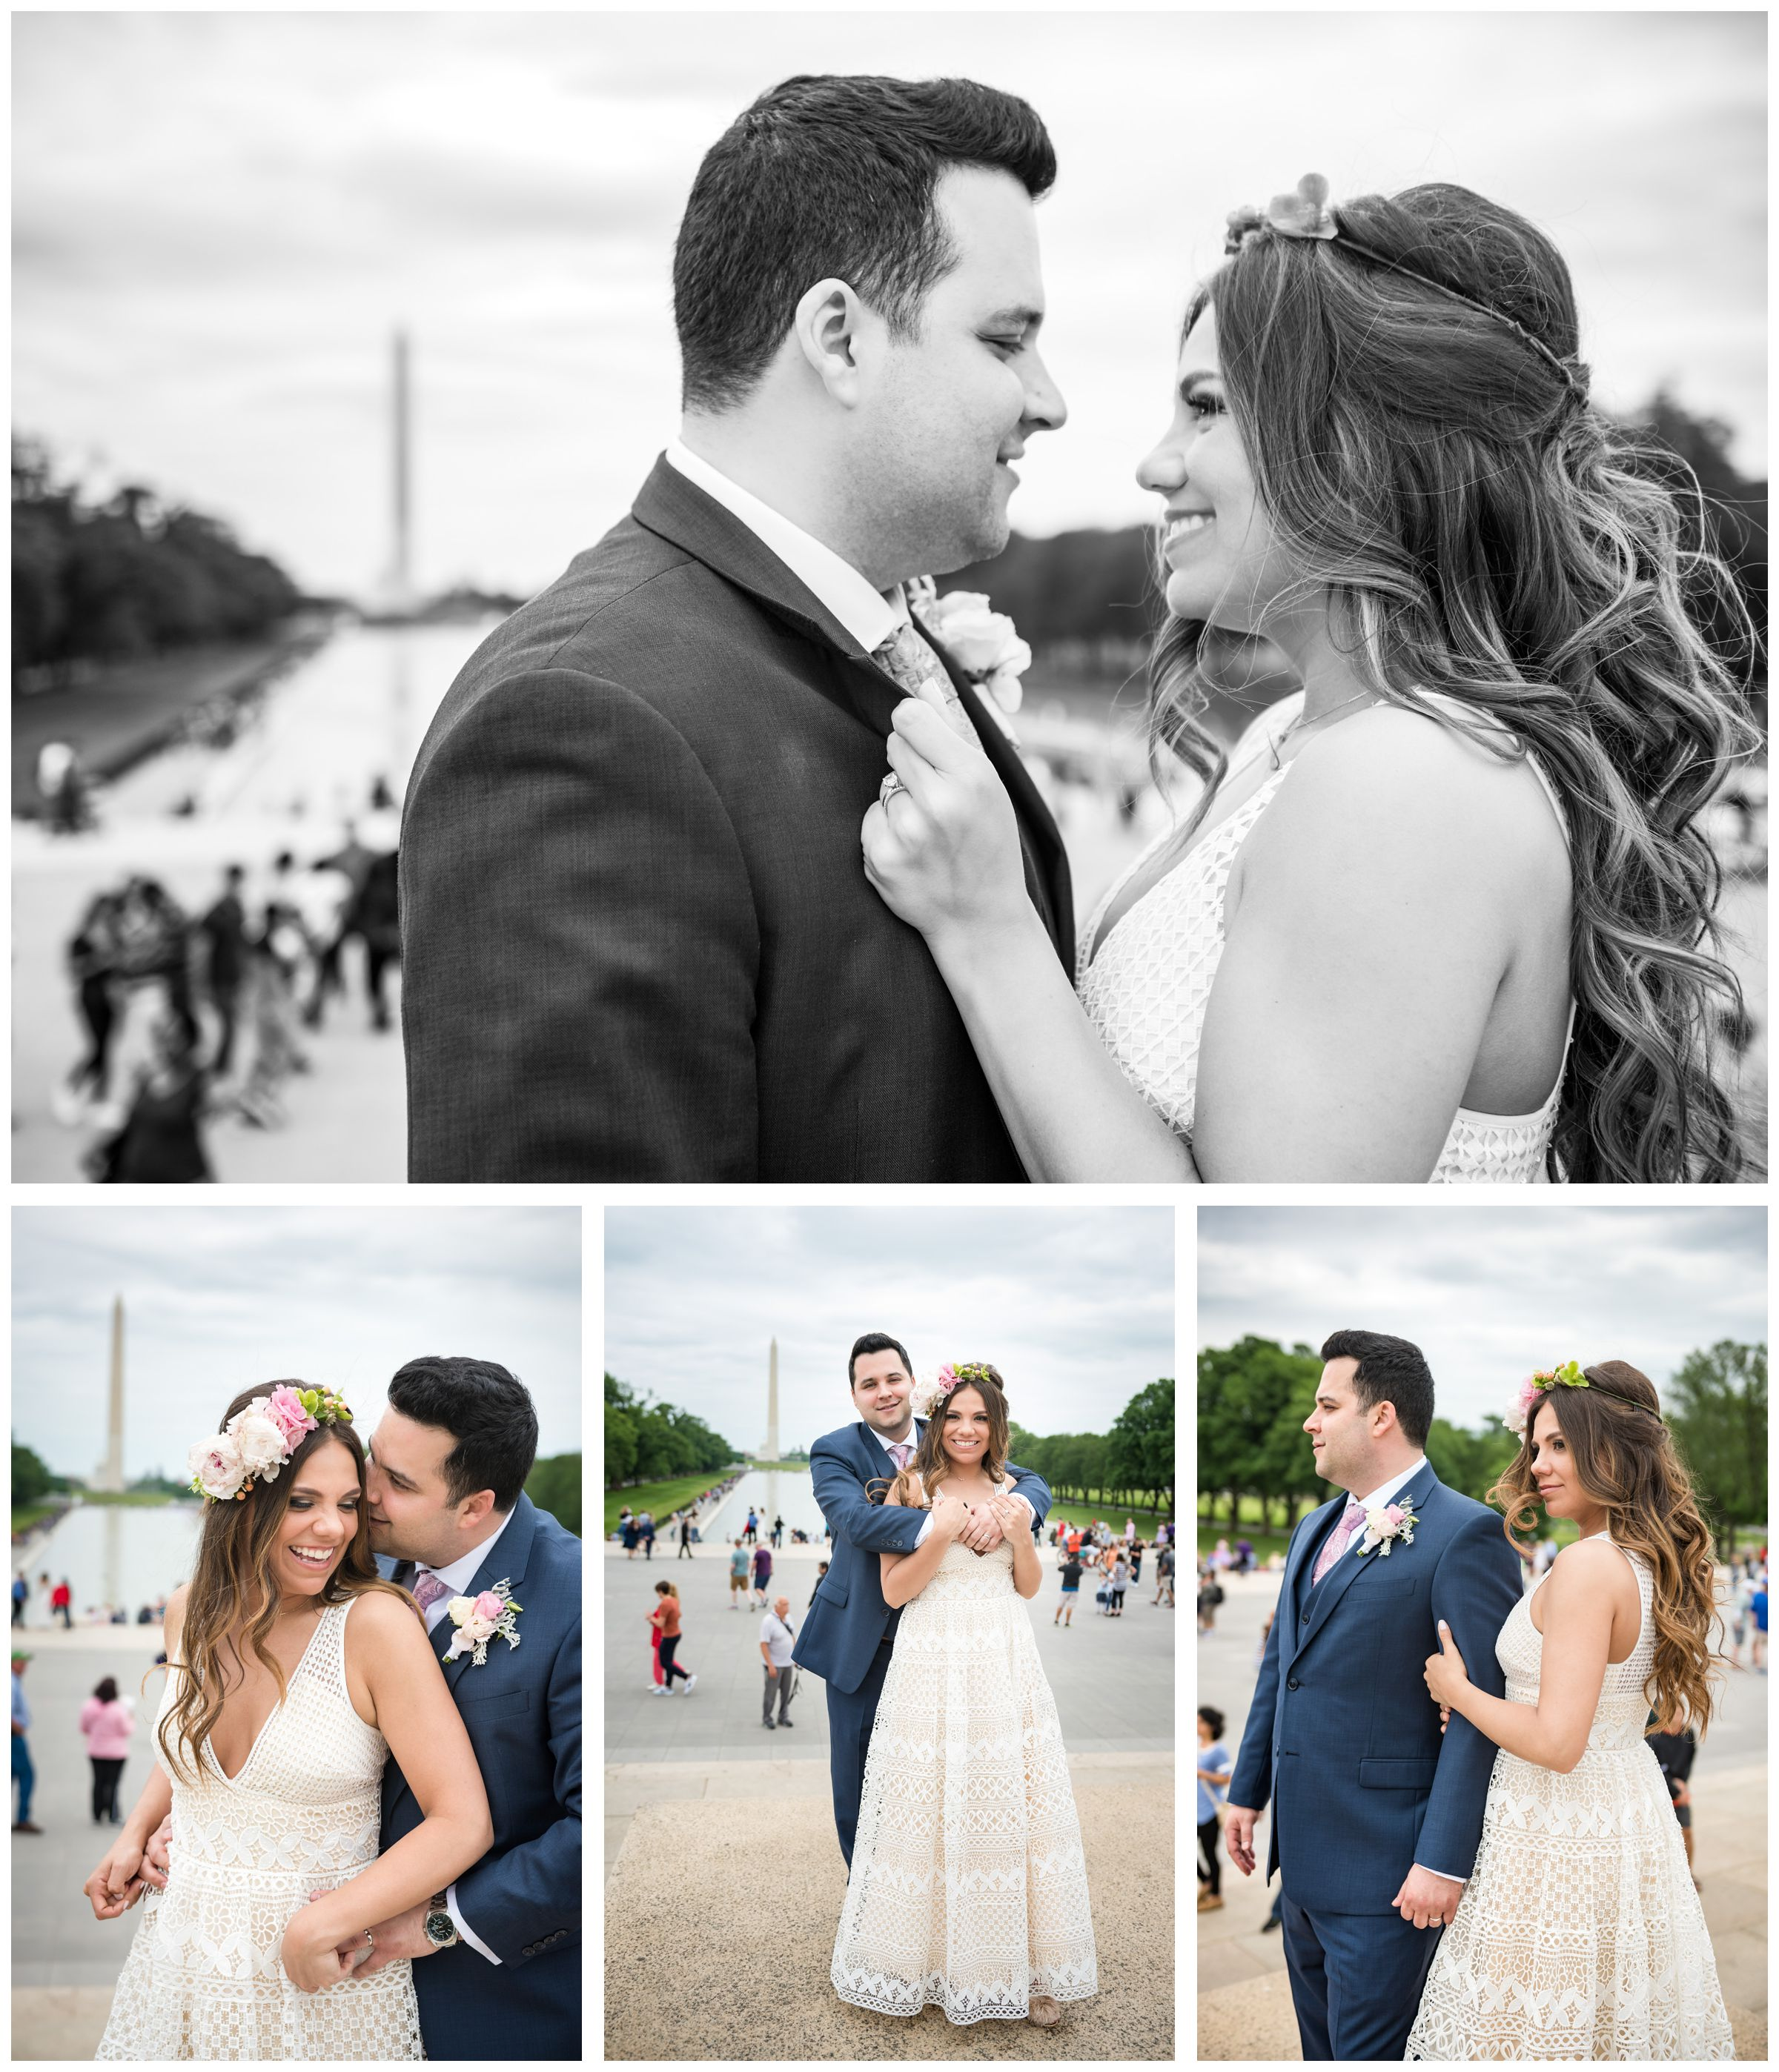 bride and groom portraits in front of reflecting pool and Washington Monument during DC monument wedding day in Washington